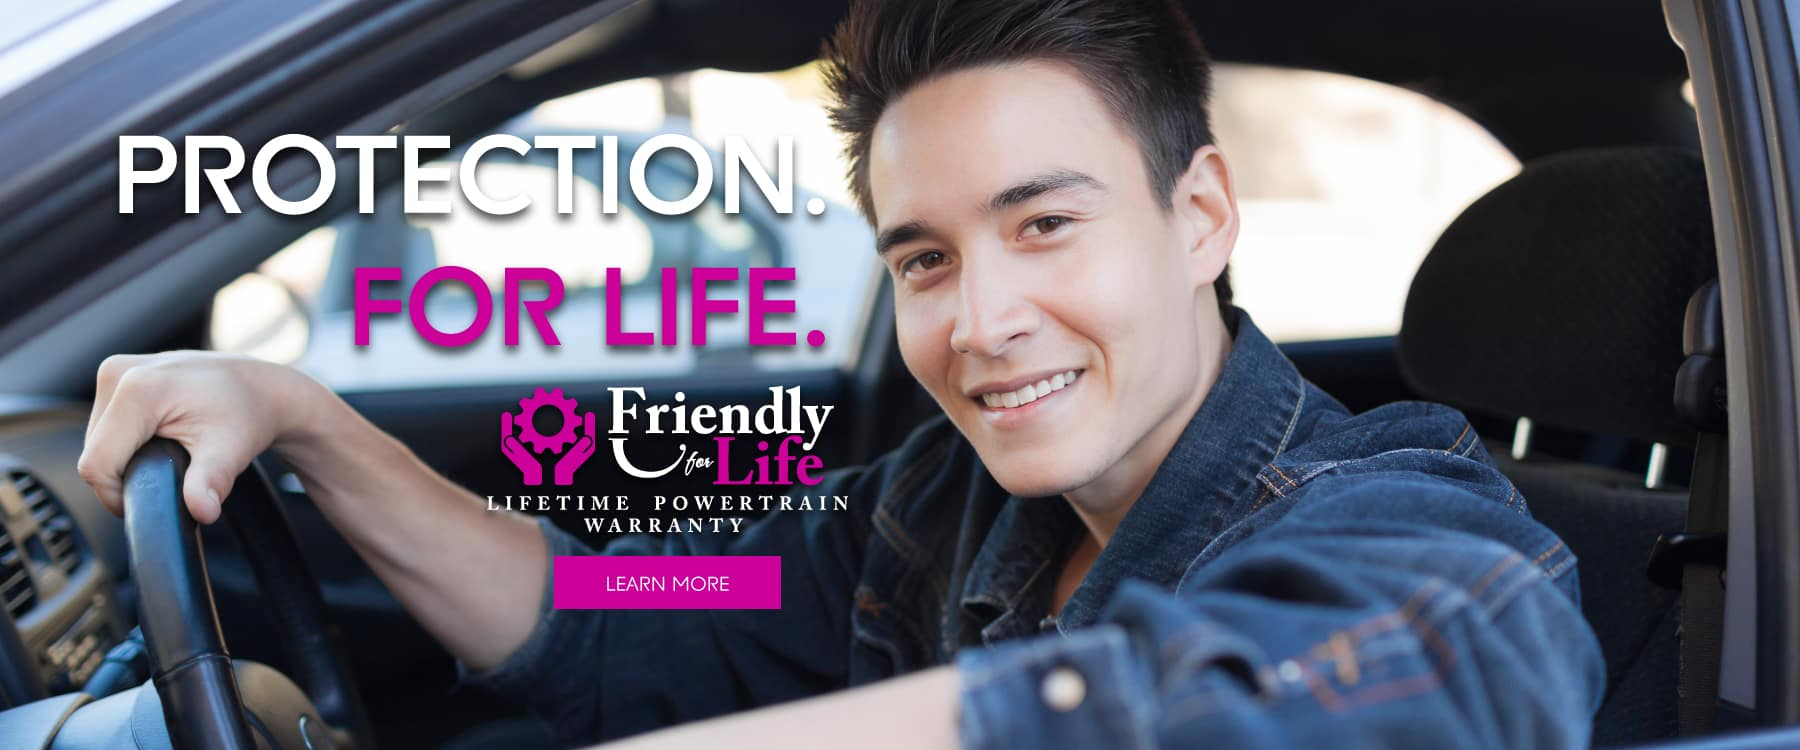 Friendly-For-Life-Protection-Guy-PINK